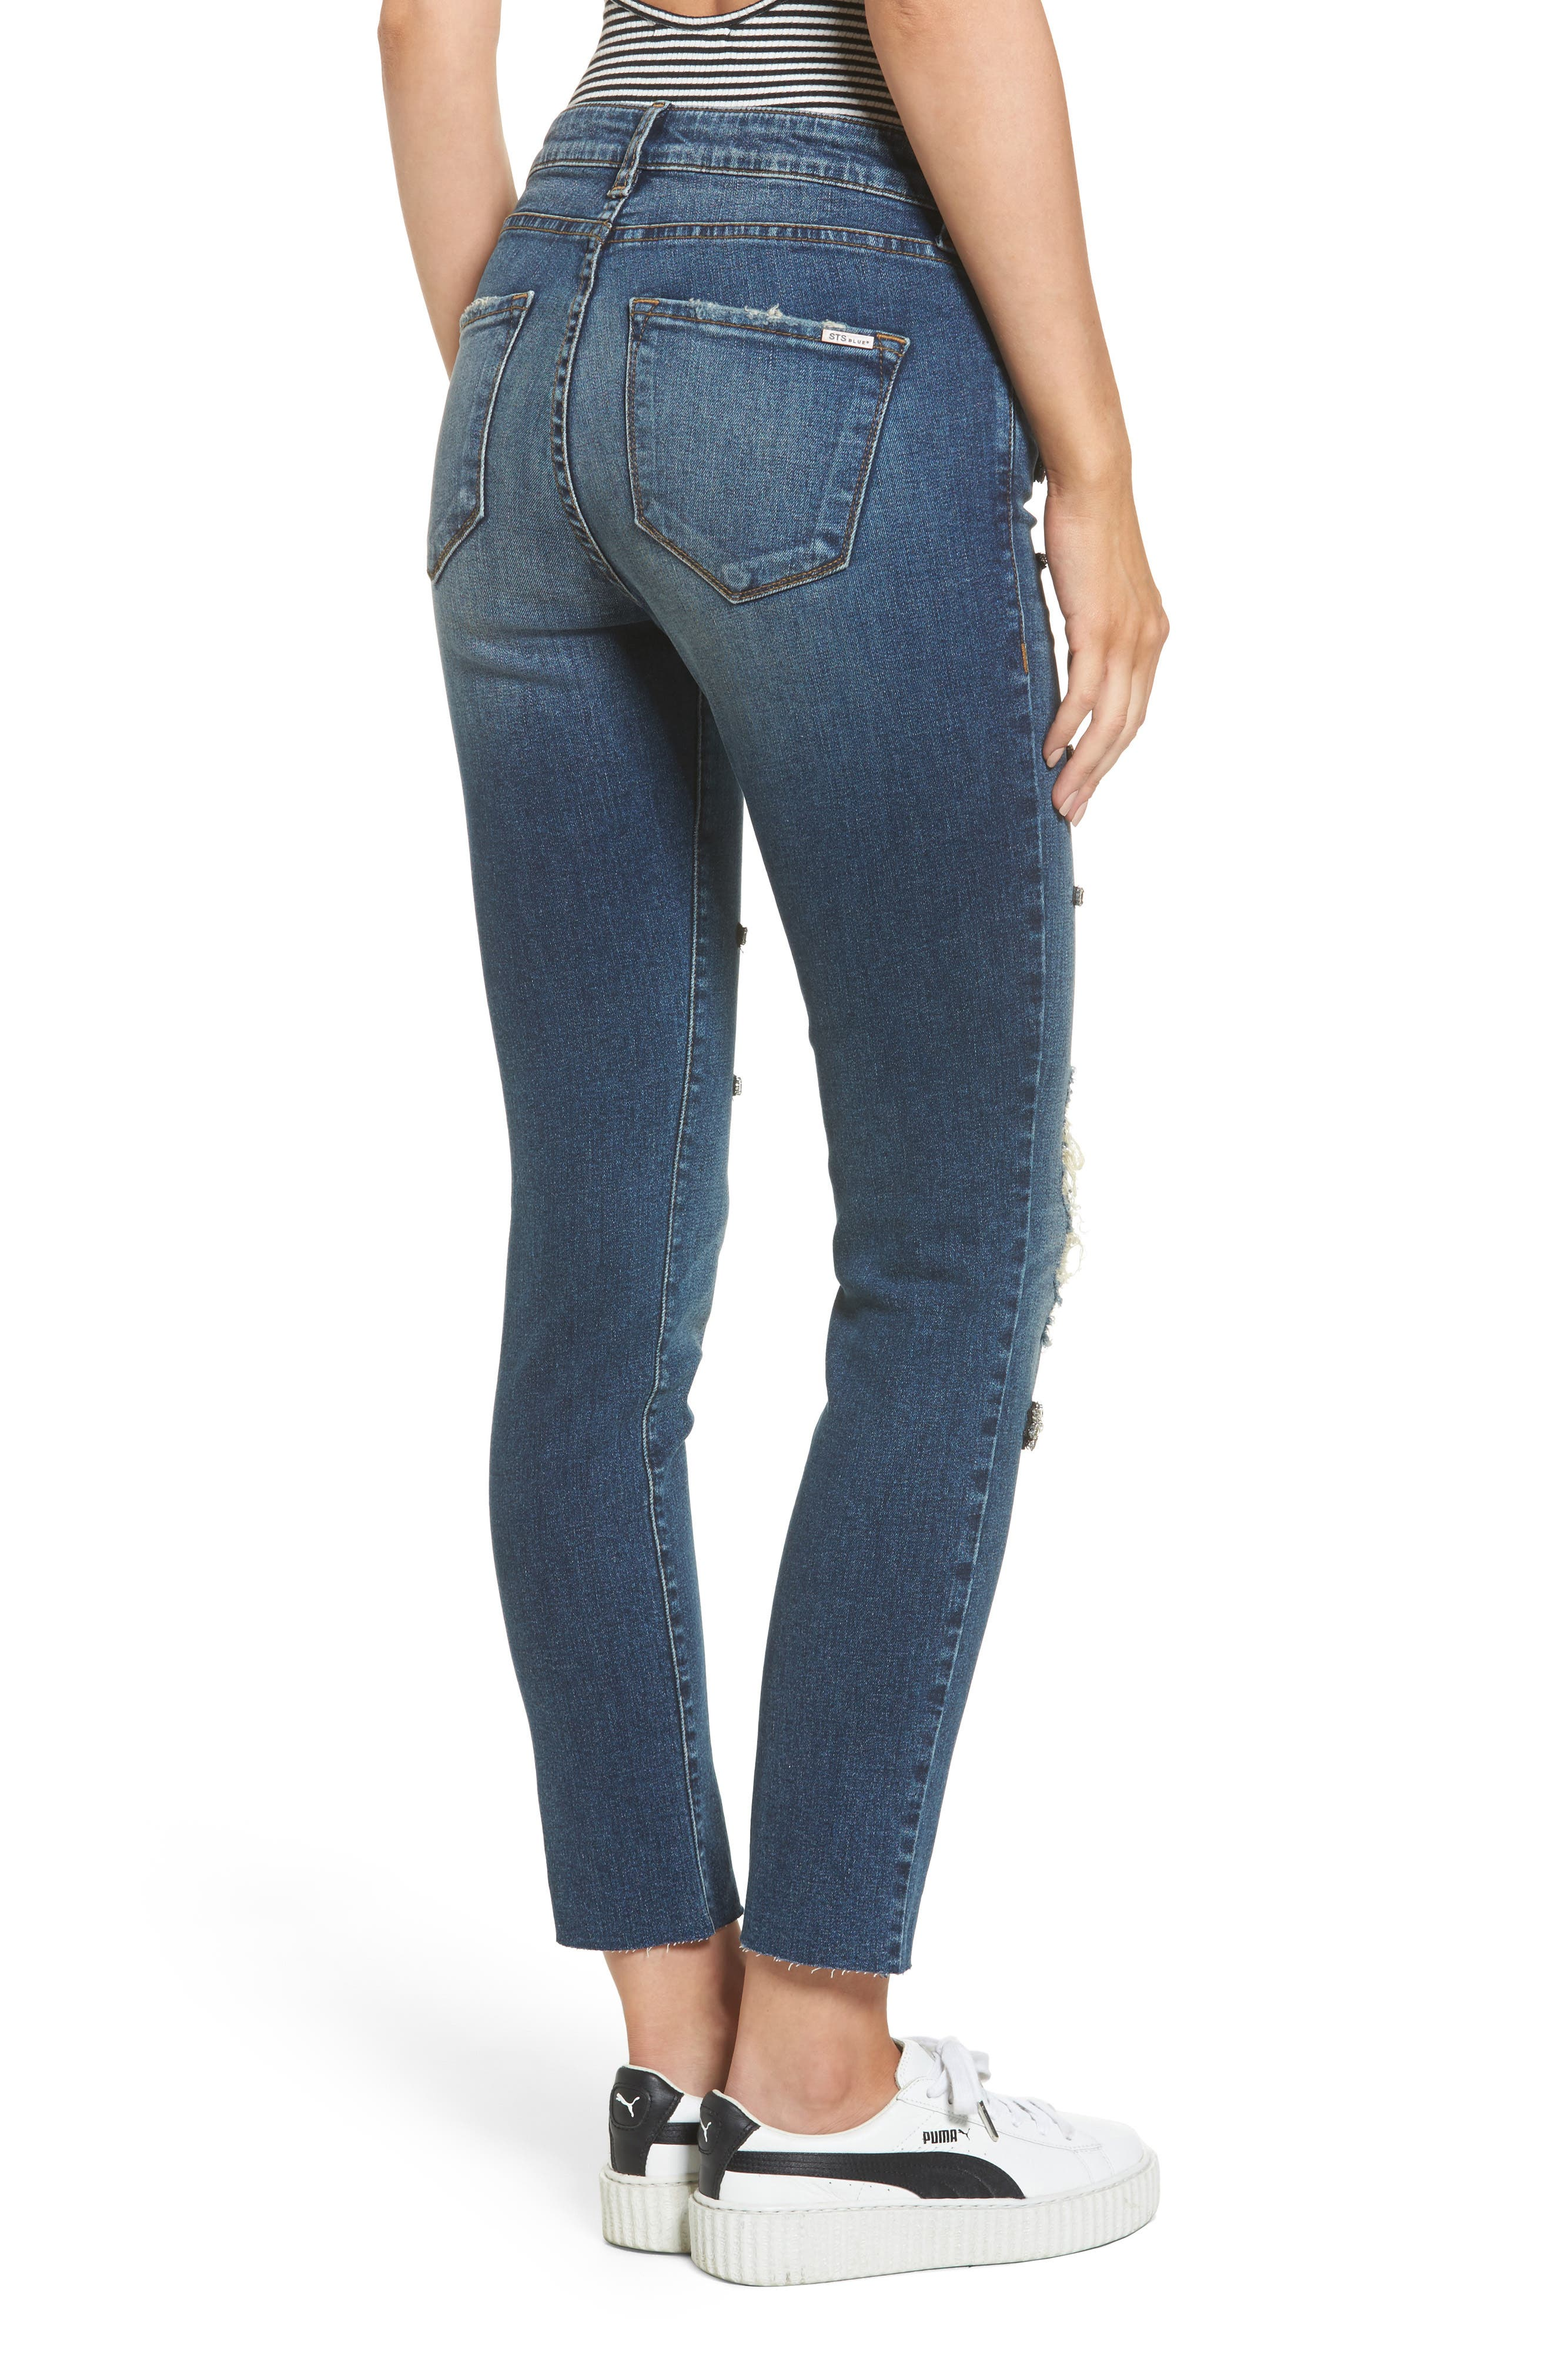 Taylor Jeweled Crop Straight Leg Jeans,                             Alternate thumbnail 2, color,                             East River View